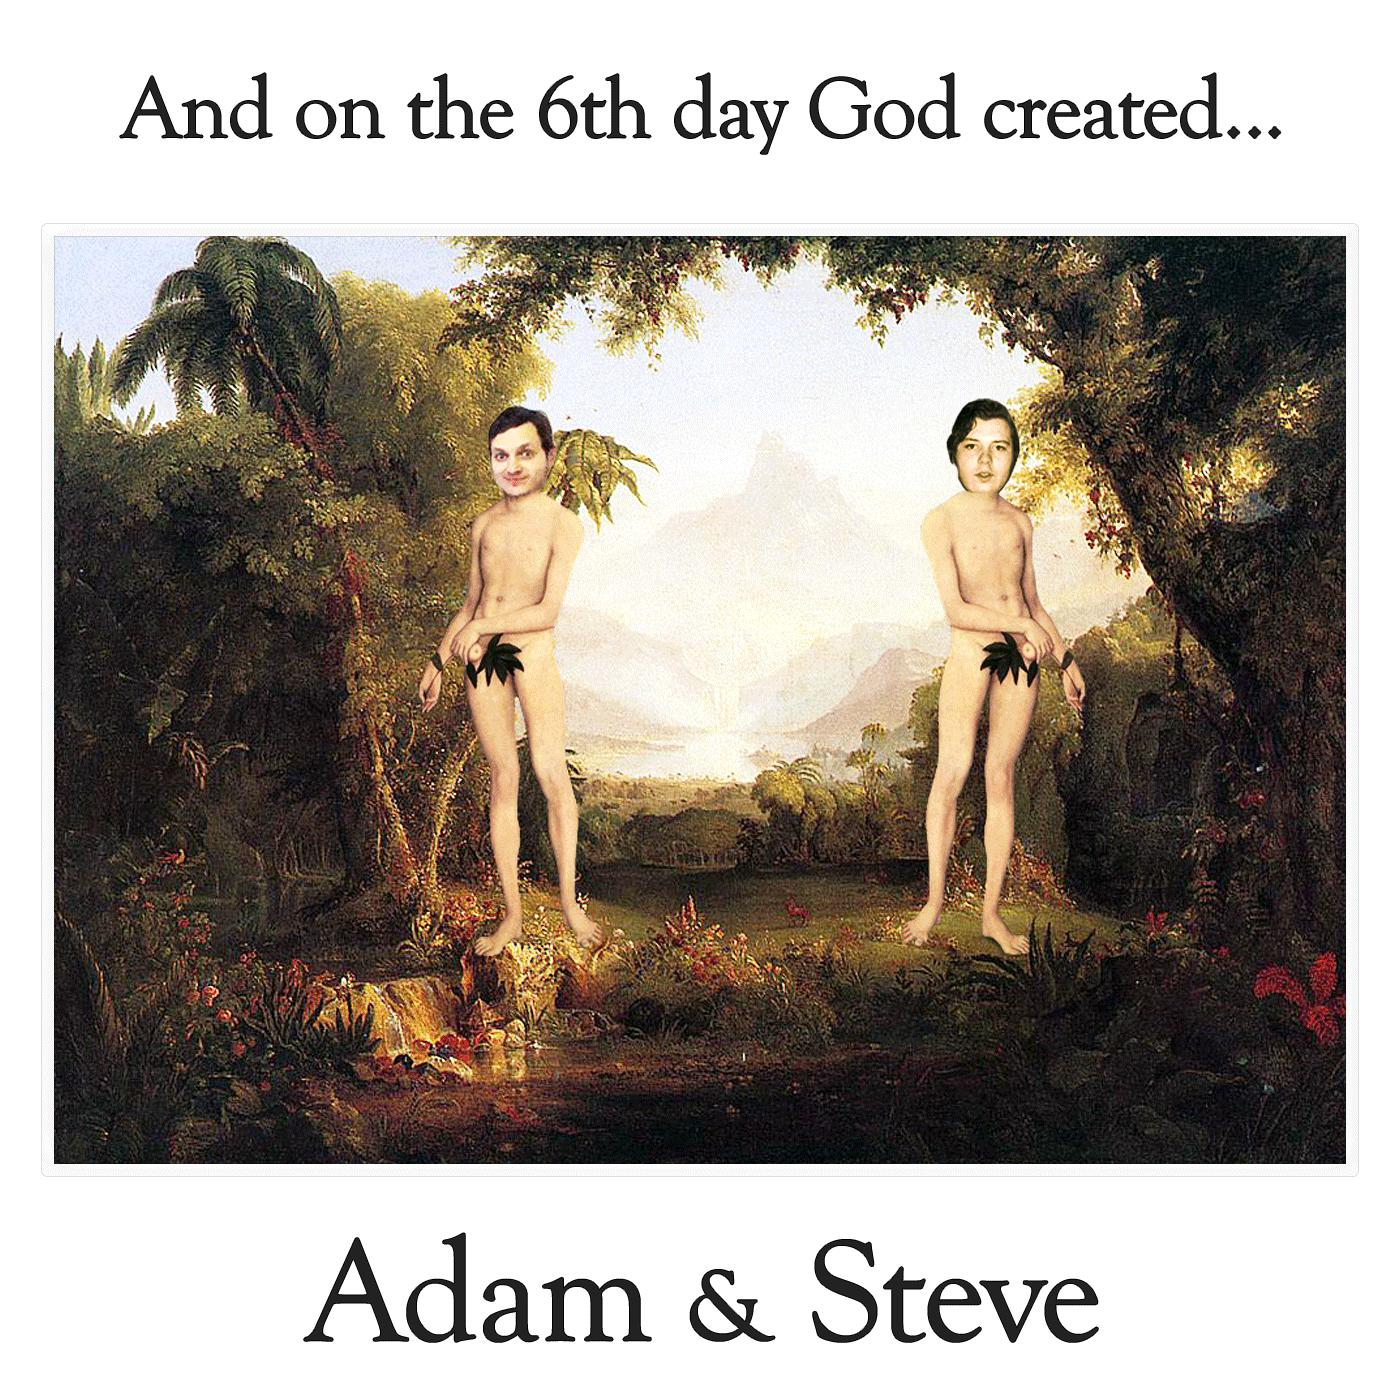 And on the 6th day God created Adam & Steve​.​.​.